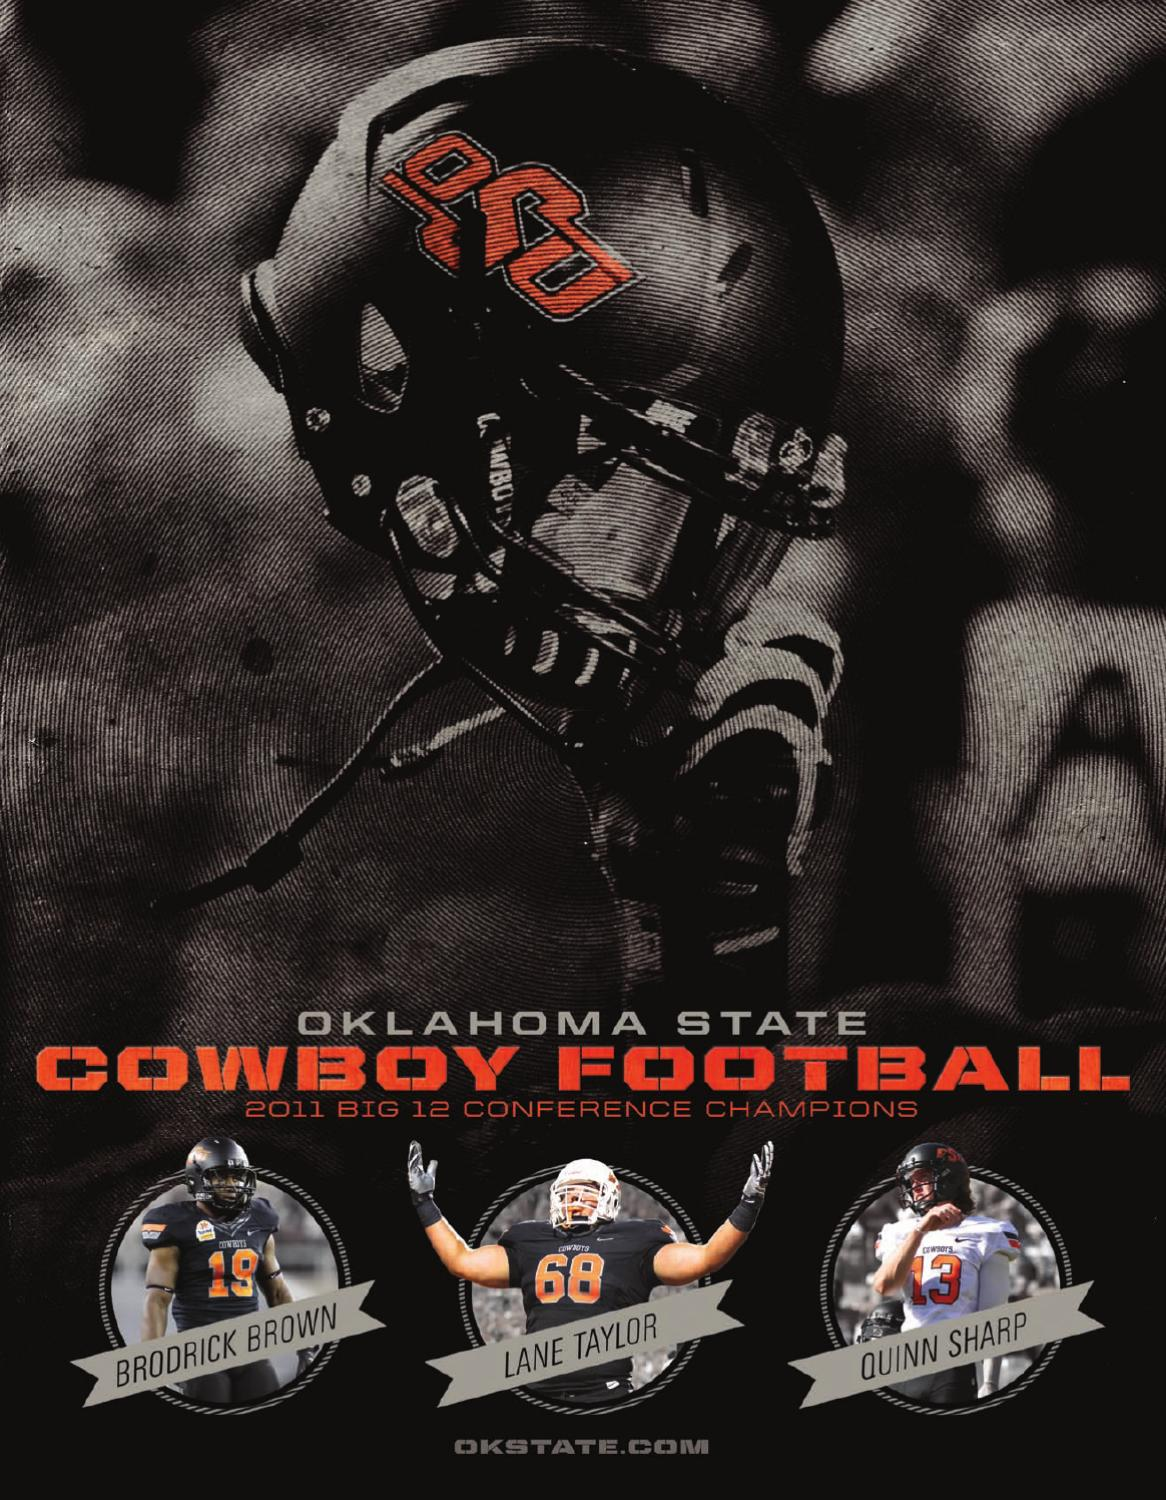 2012 Cowboy Football Media Guide by Oklahoma State Athletics - issuu 6a4d7842f